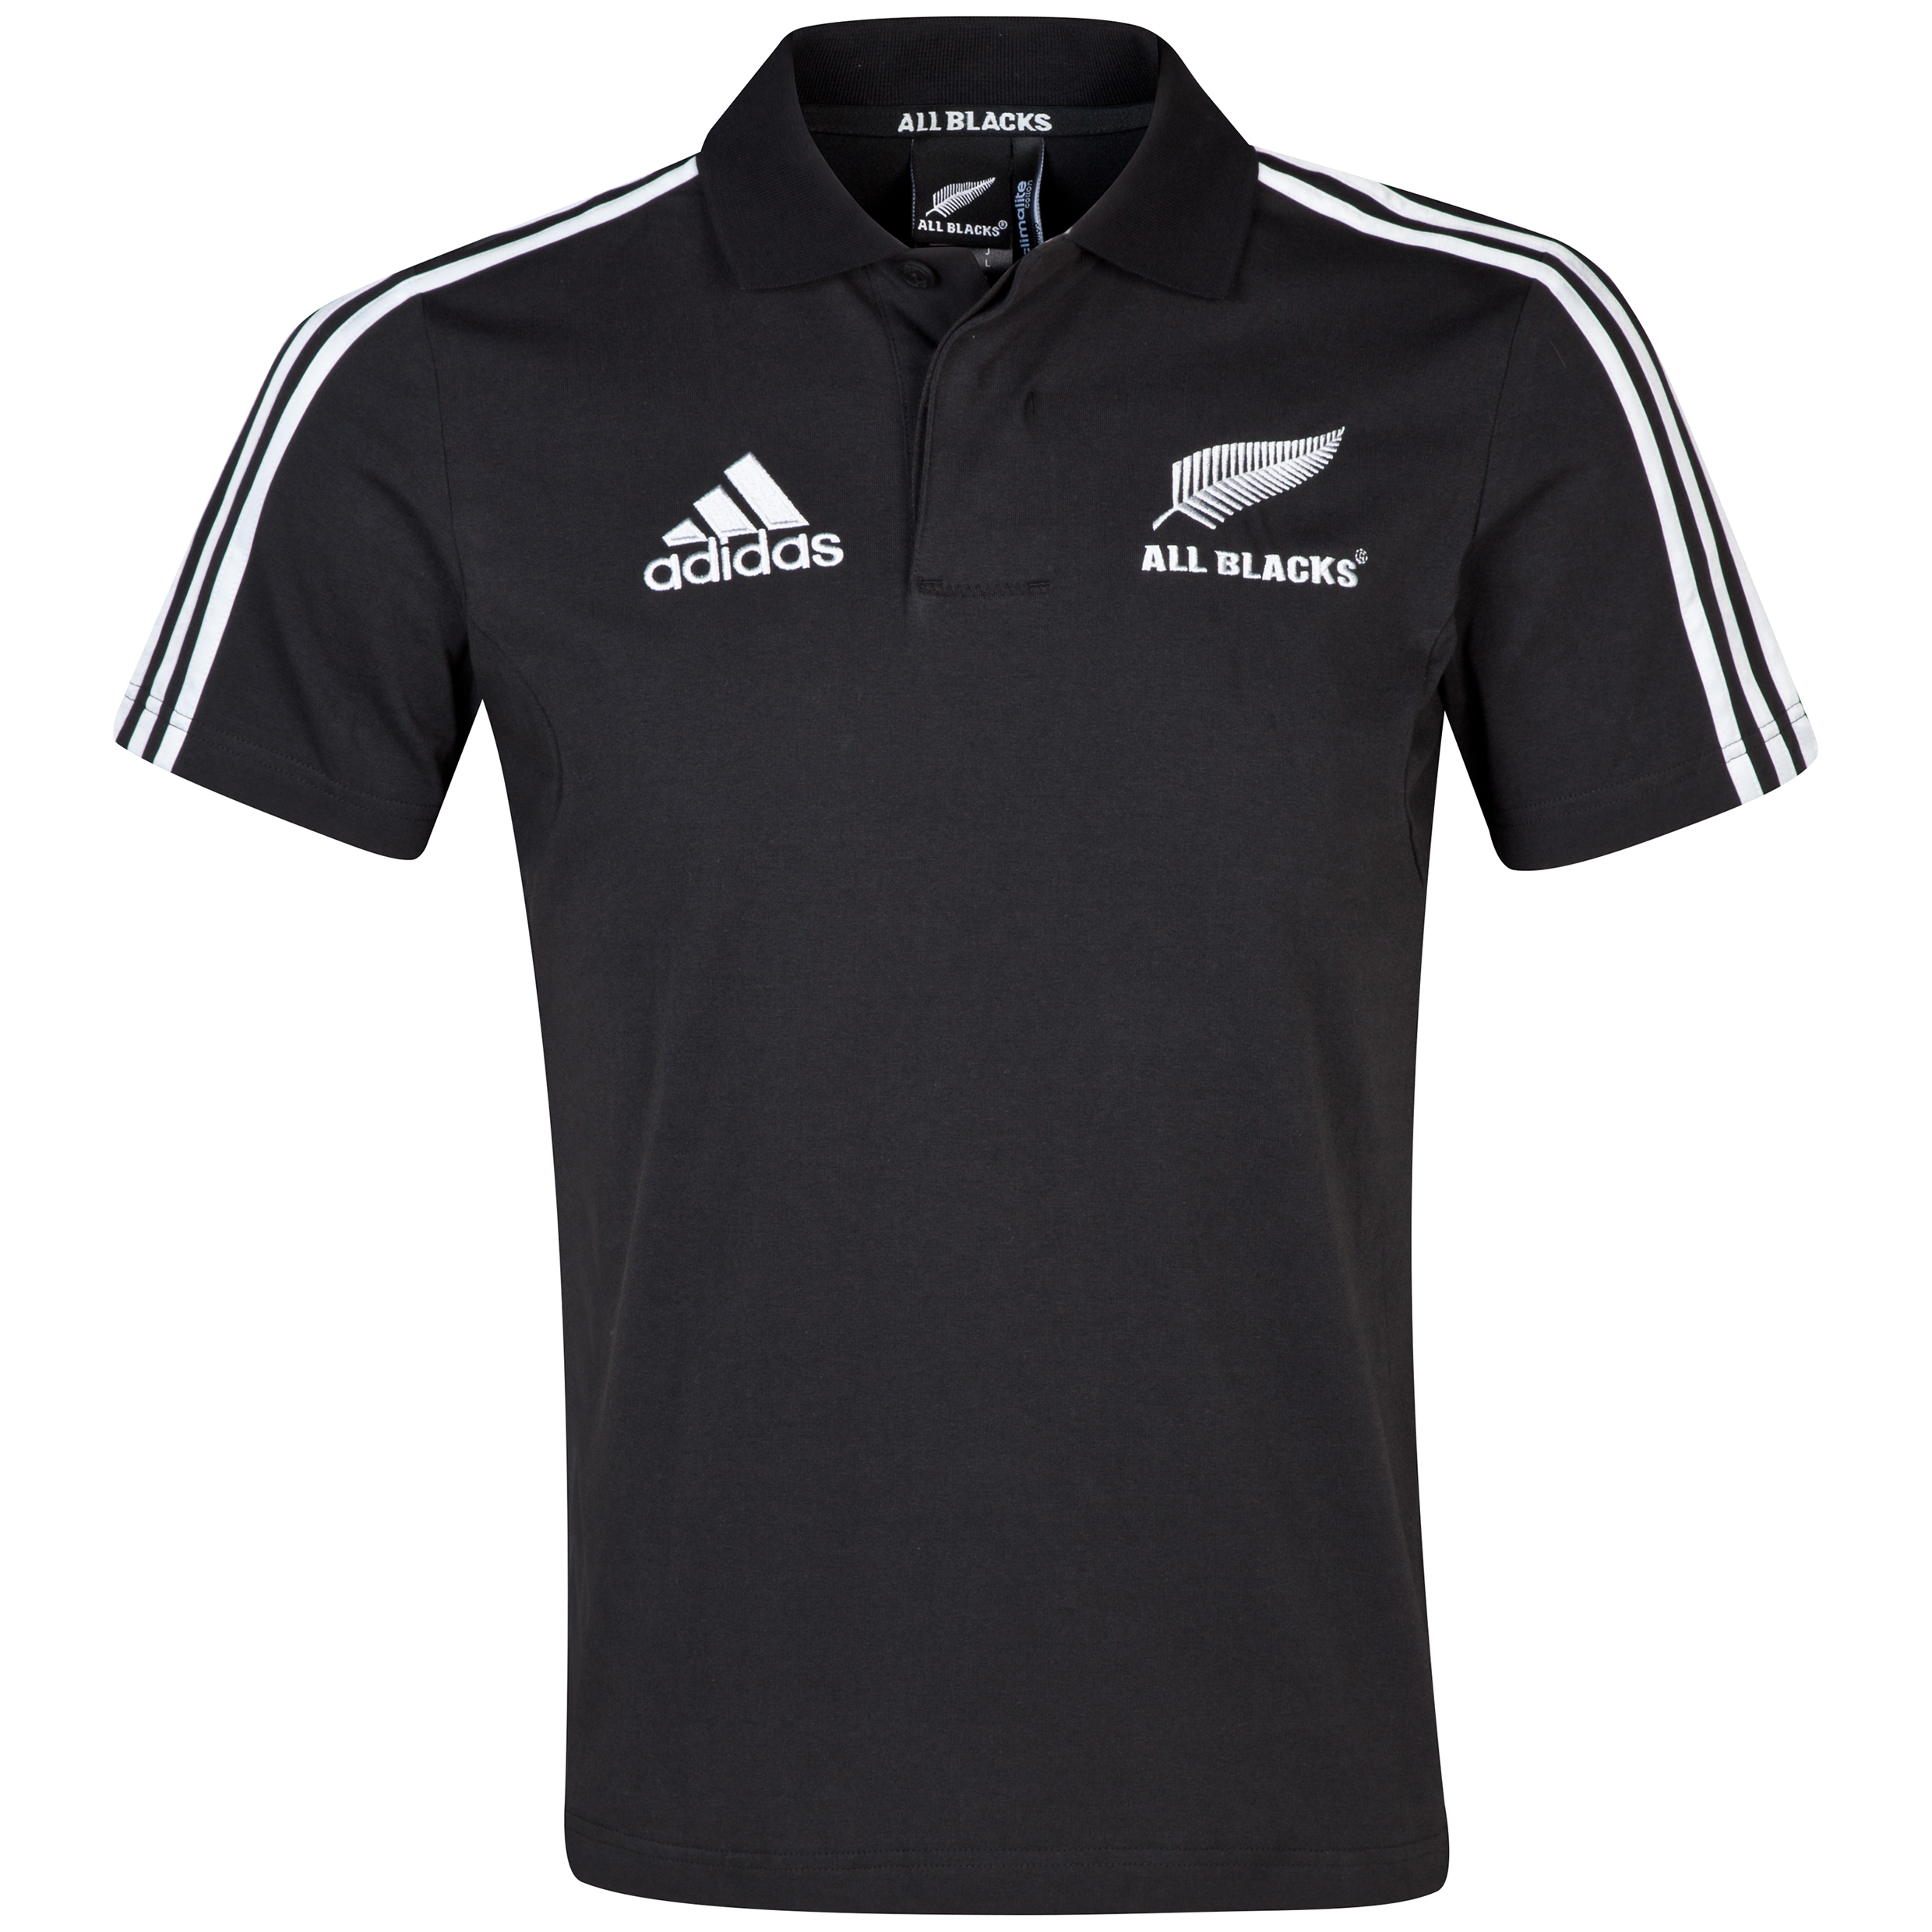 All Blacks Polo - Black